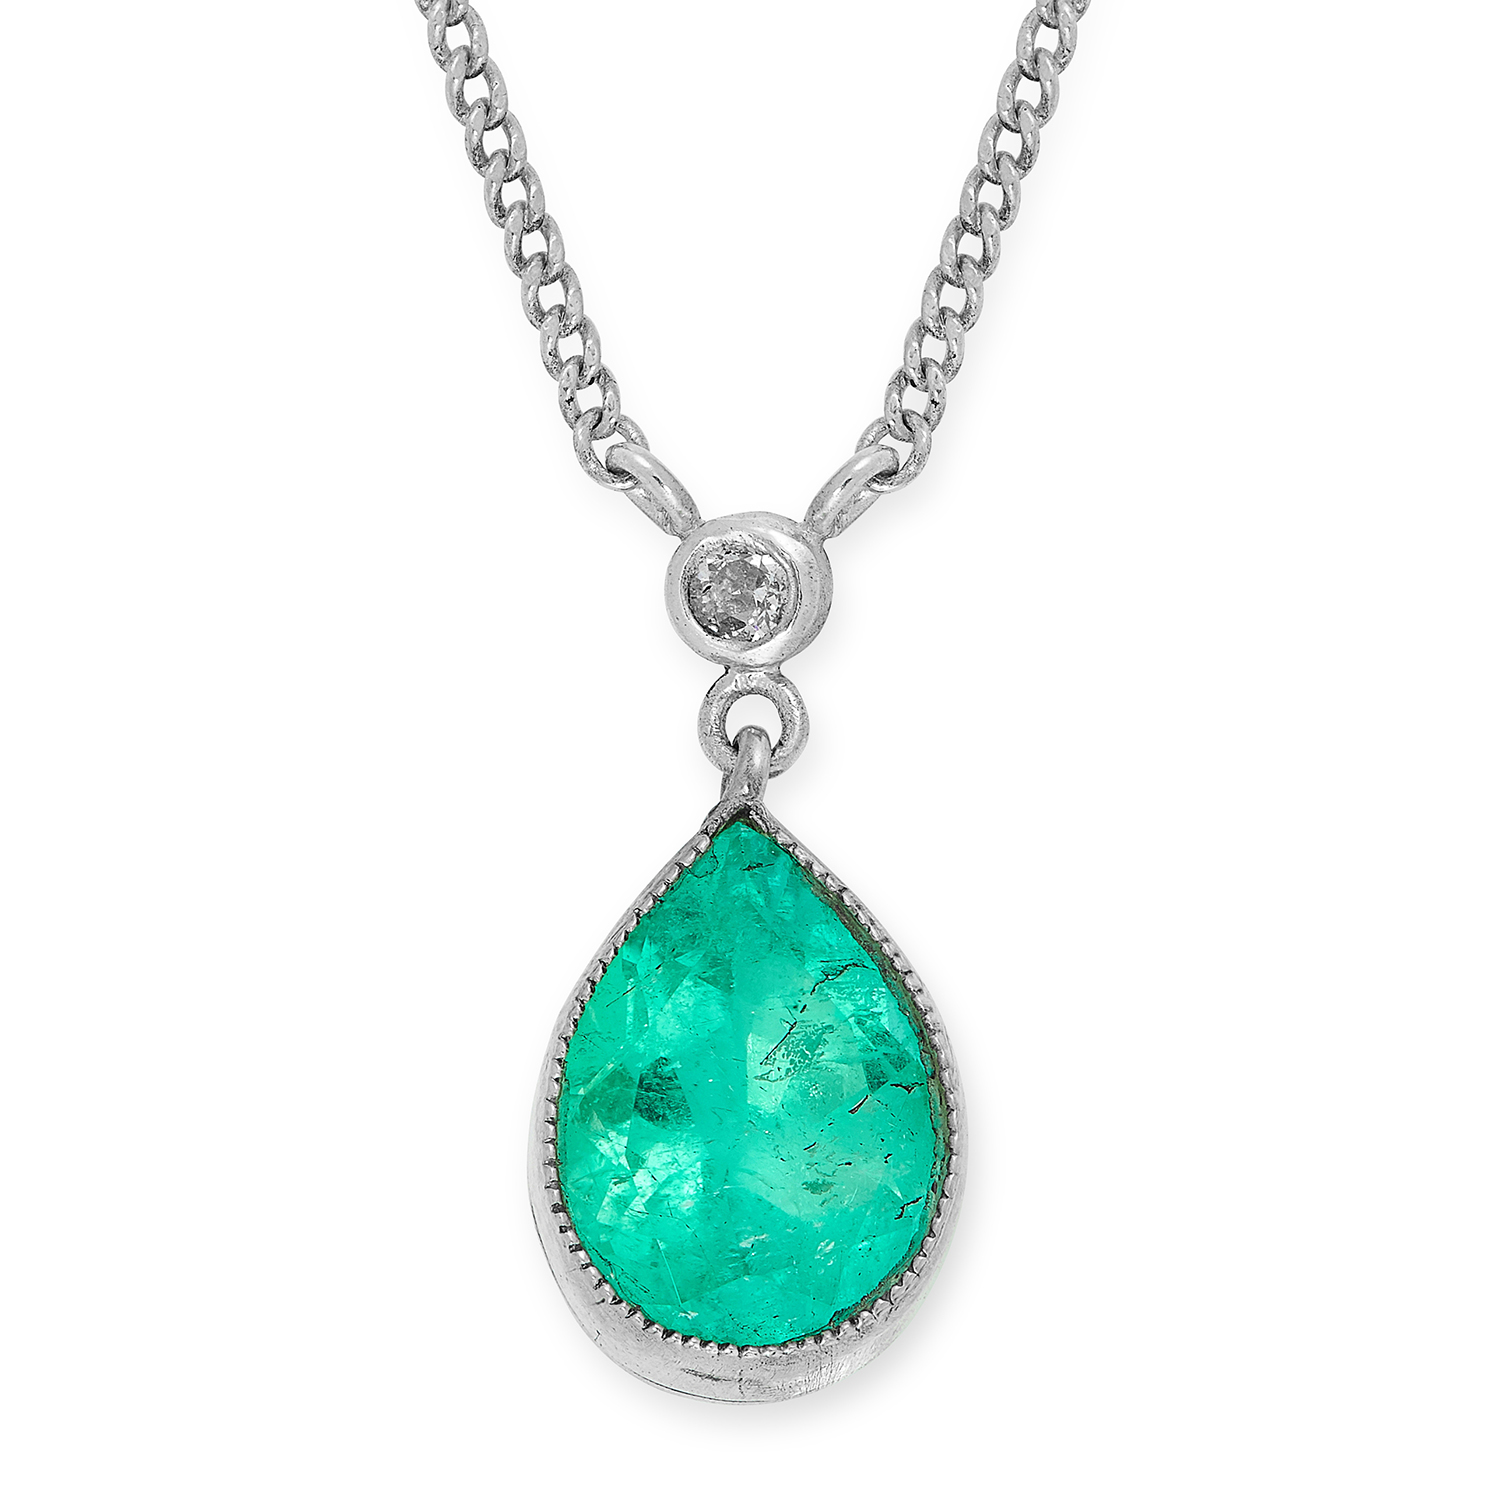 Los 17 - A COLOMBIAN EMERALD AND DIAMOND NECKLACE set with a pear cut emerald of 2.67 carats accented by a